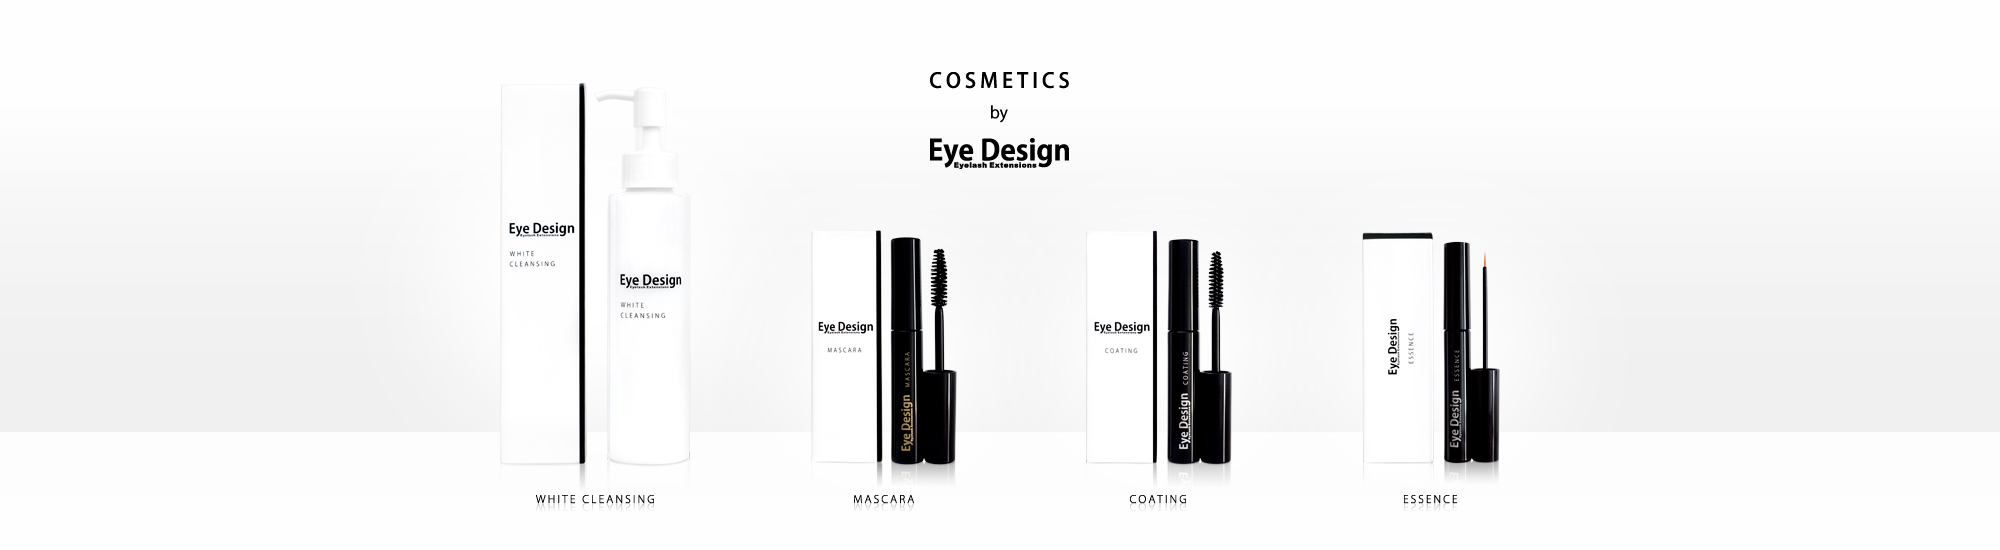 Eye Design Cosmetics